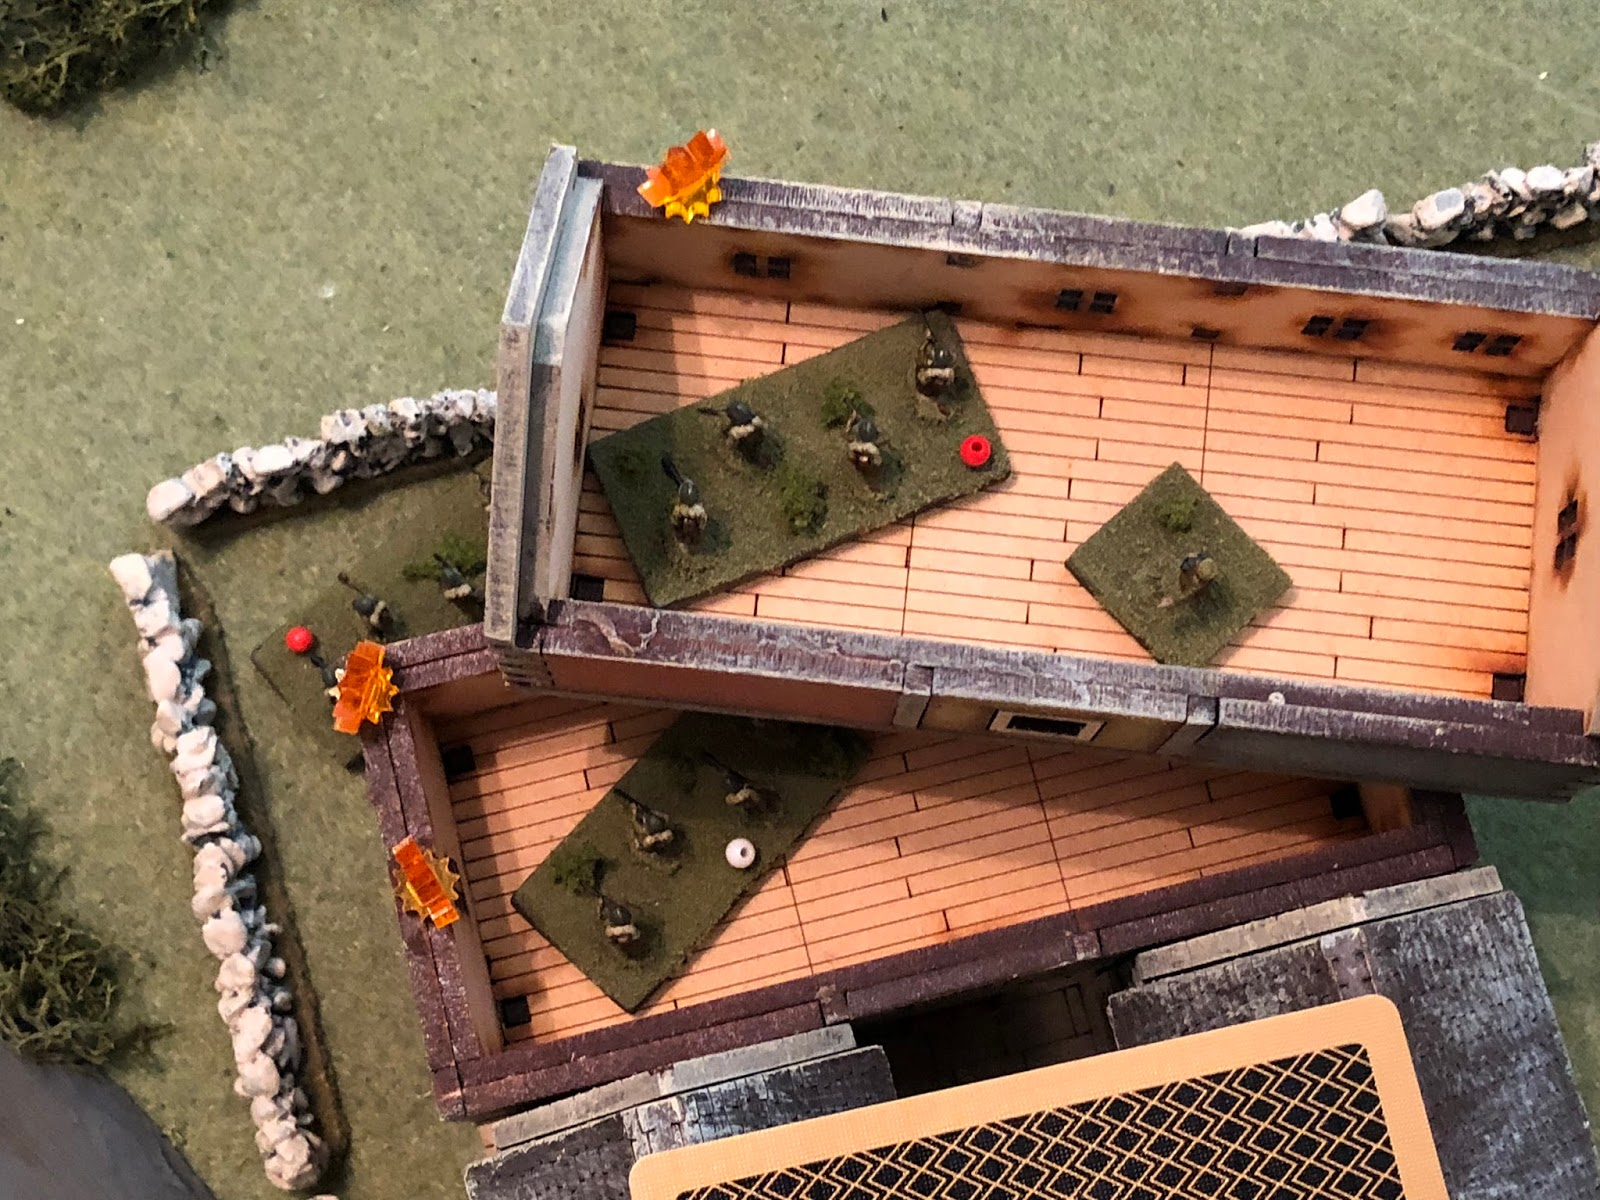 And the French 2nd Platoon quickly finds itself in trouble, with all three rifle squads hunkered down, out of the fight.